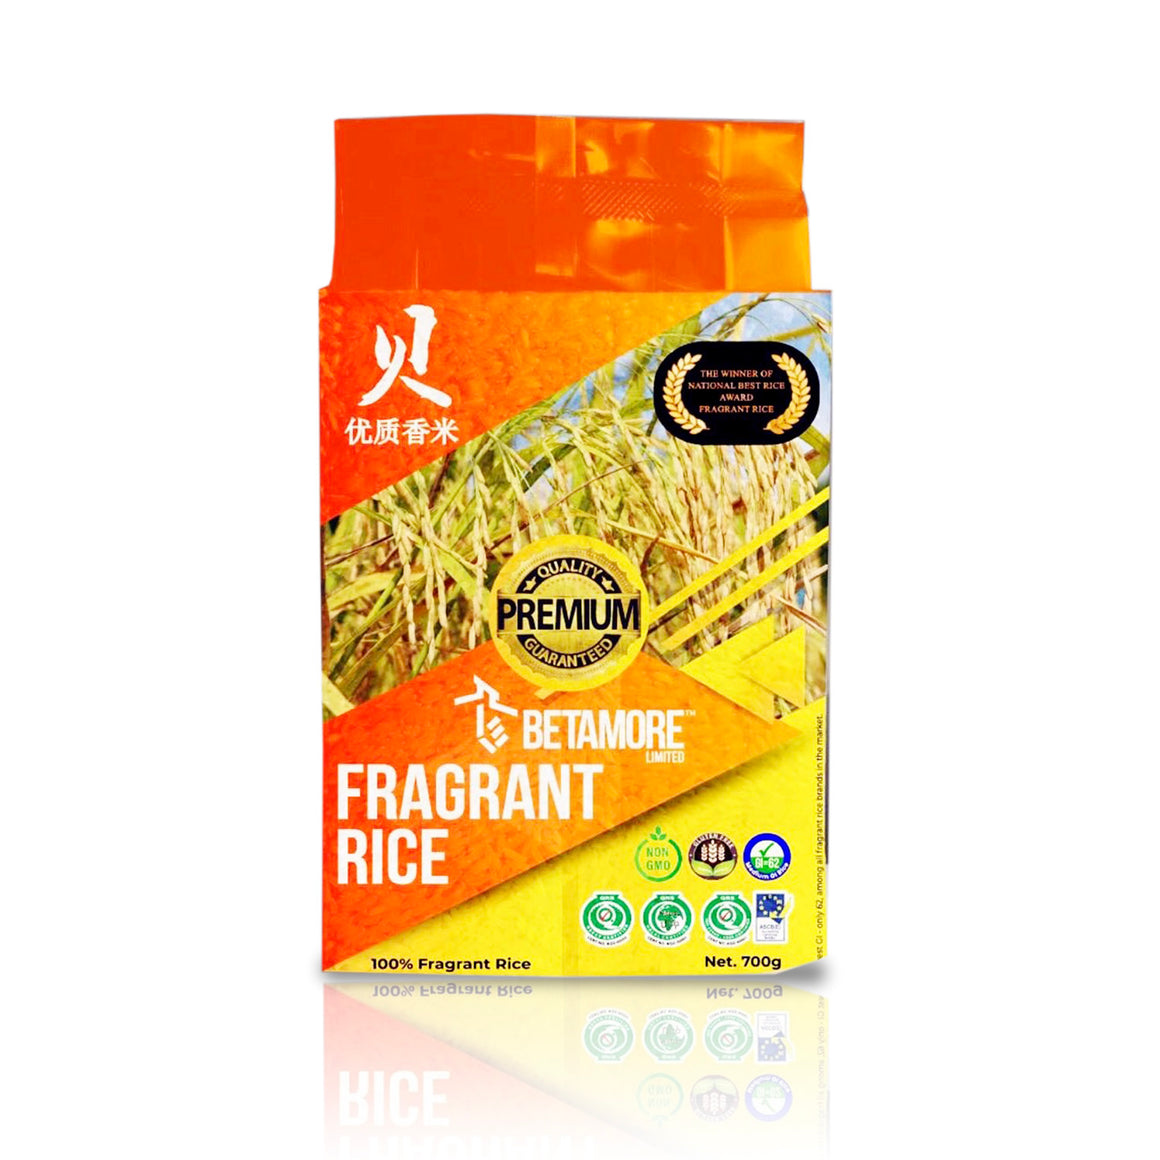 4 Packs Betamore Premium Fragrant Rice - 700g